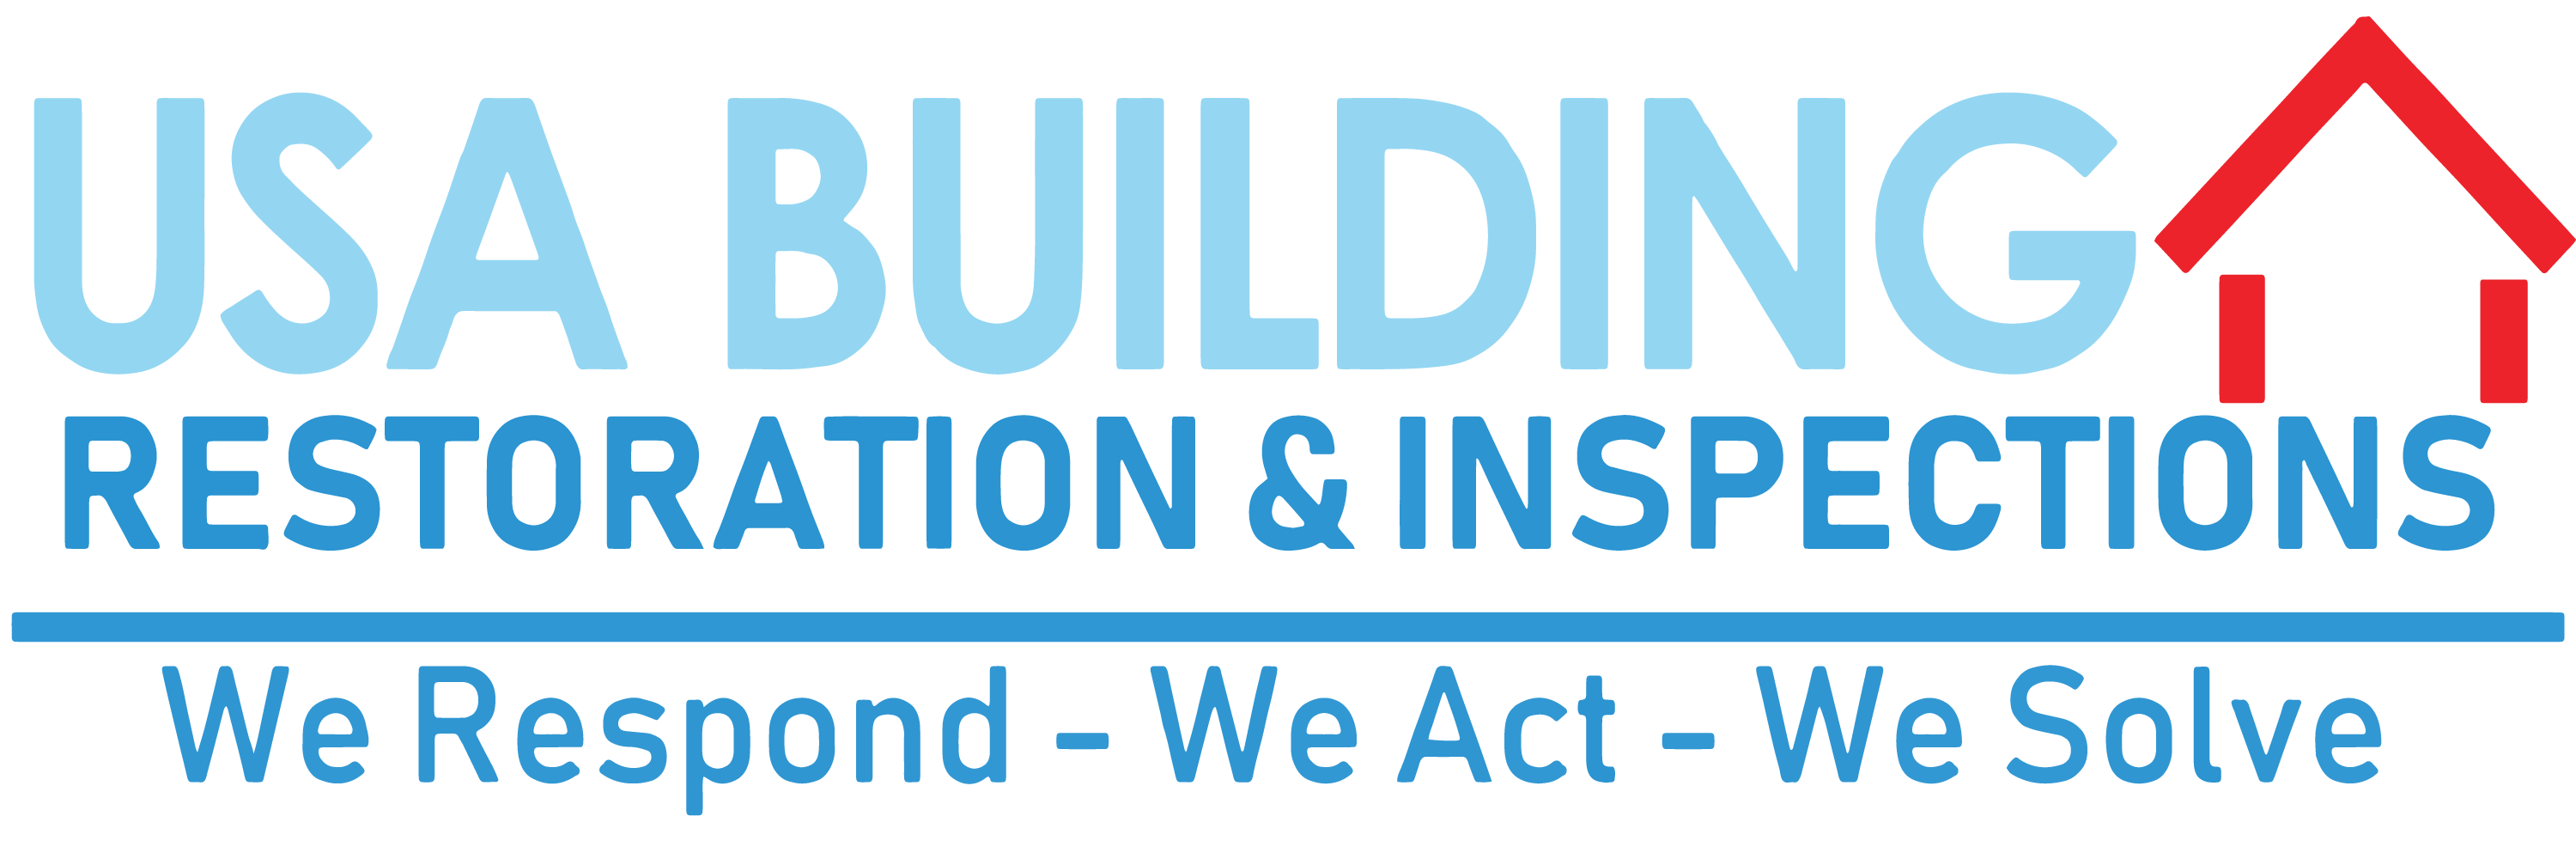 USA Building Restoration and Inspections